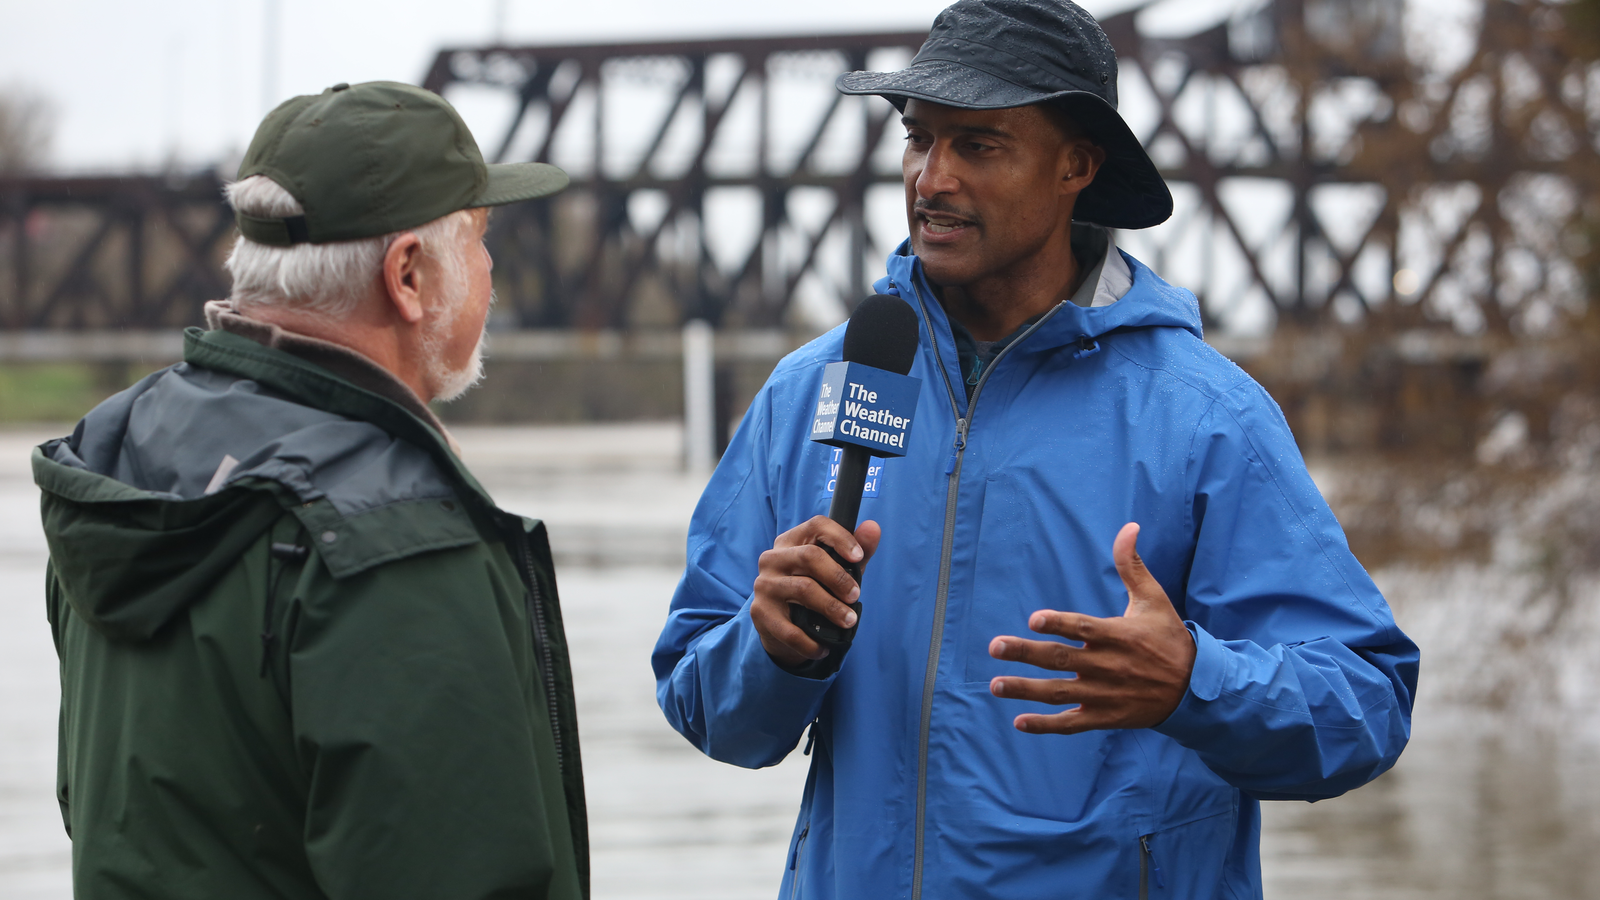 I'm Paul Goodloe, Meteorologist At The Weather Channel, And This Is How I Parent